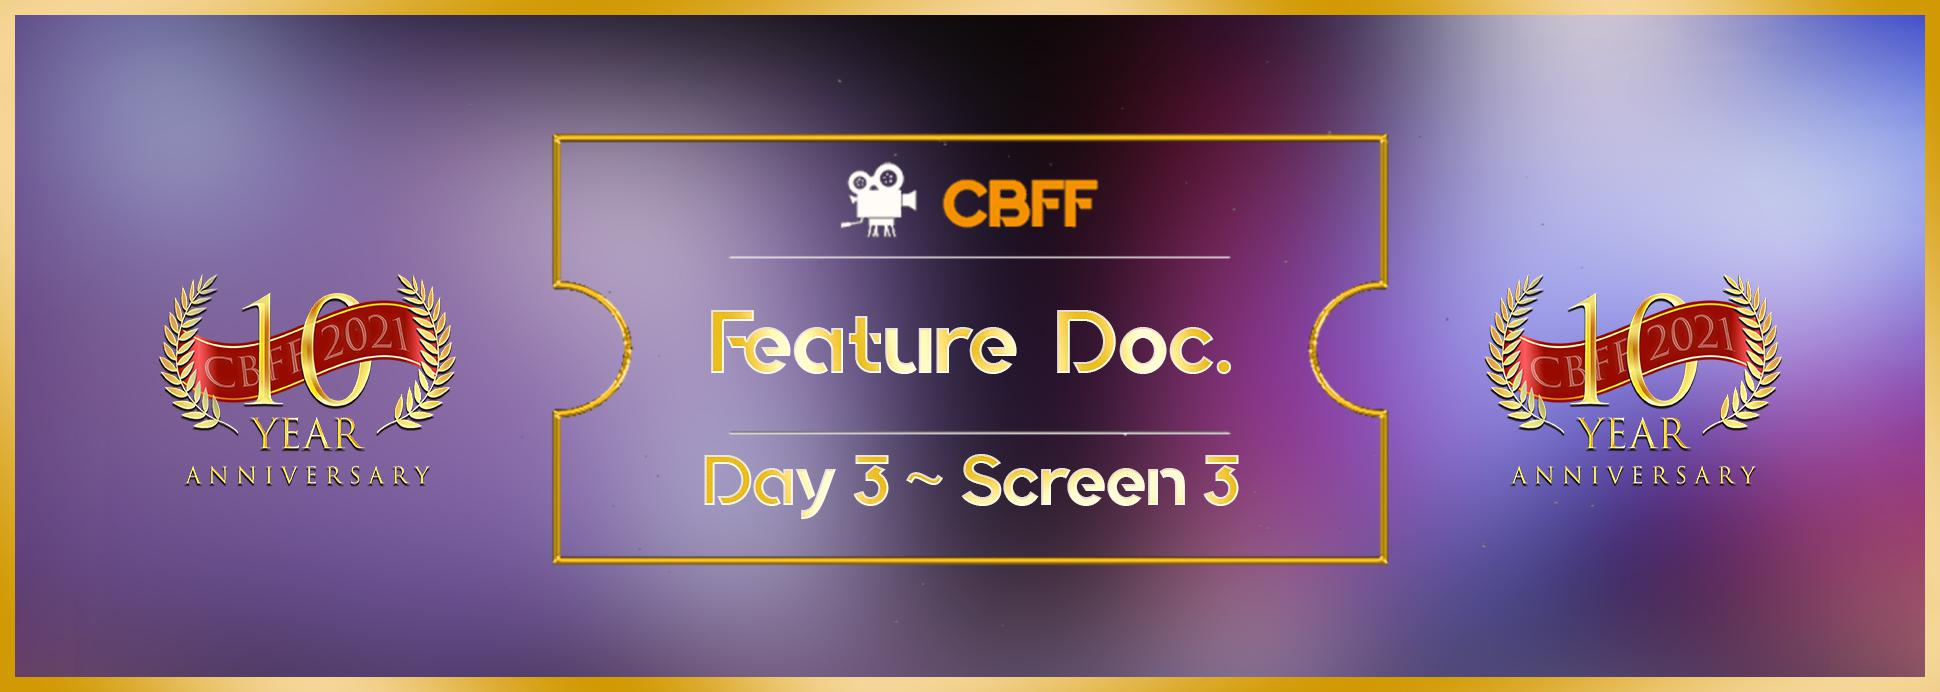 Day 3, Screen 3: Feature Doc.